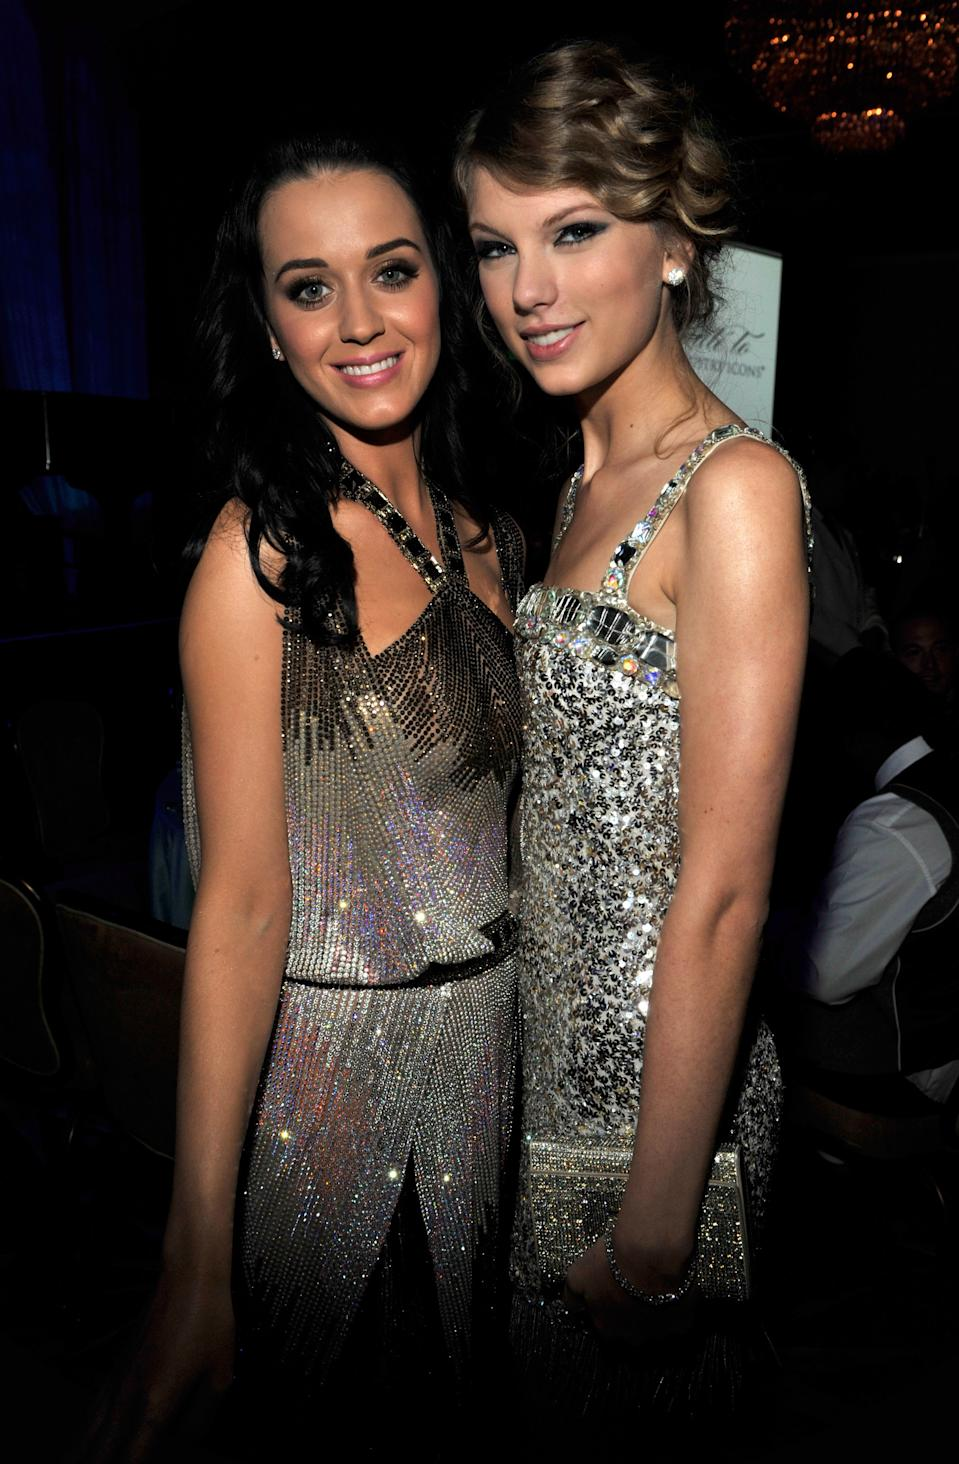 Katy Perry and Taylor Swift at the 52nd Annual GRAMMY Awards - Salute To Icons Honoring Doug Morris held at The Beverly Hilton Hotel on January 30, 2010 in Beverly Hills, California.  (Photo by Kevin Mazur/WireImage)